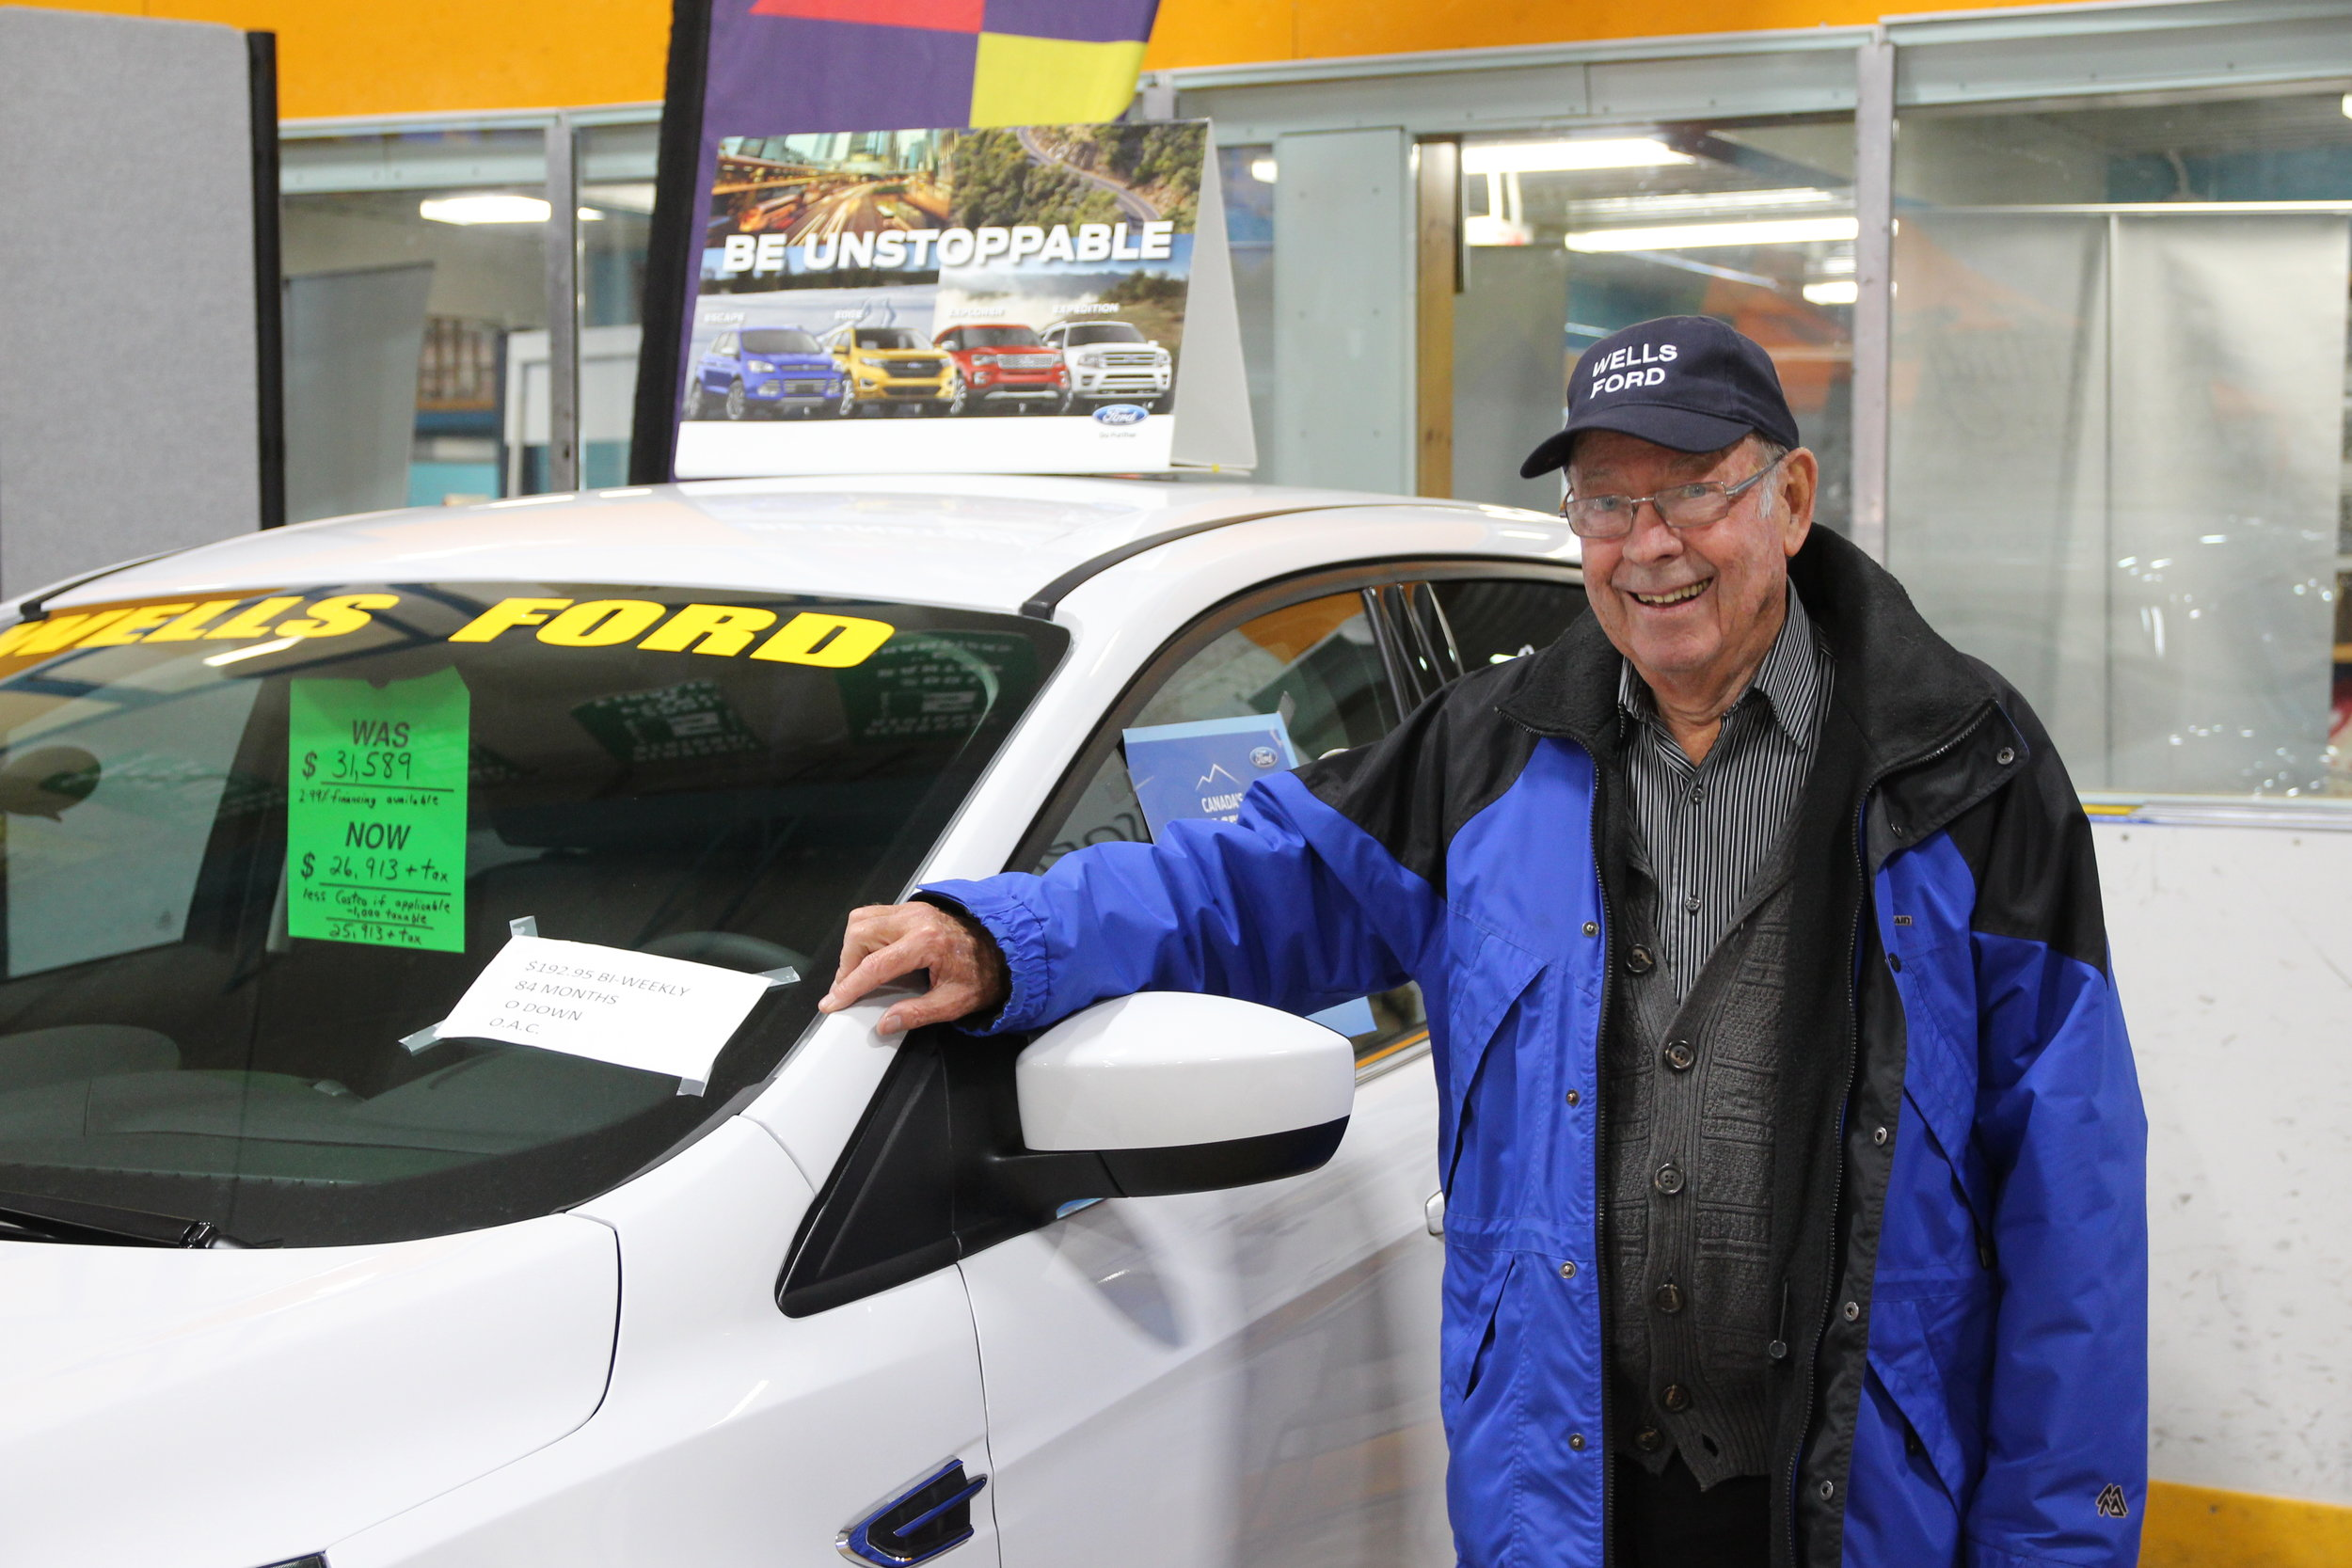 Looking for a new vehicle? Allan wells, representing Wells Ford, will be at the expo.